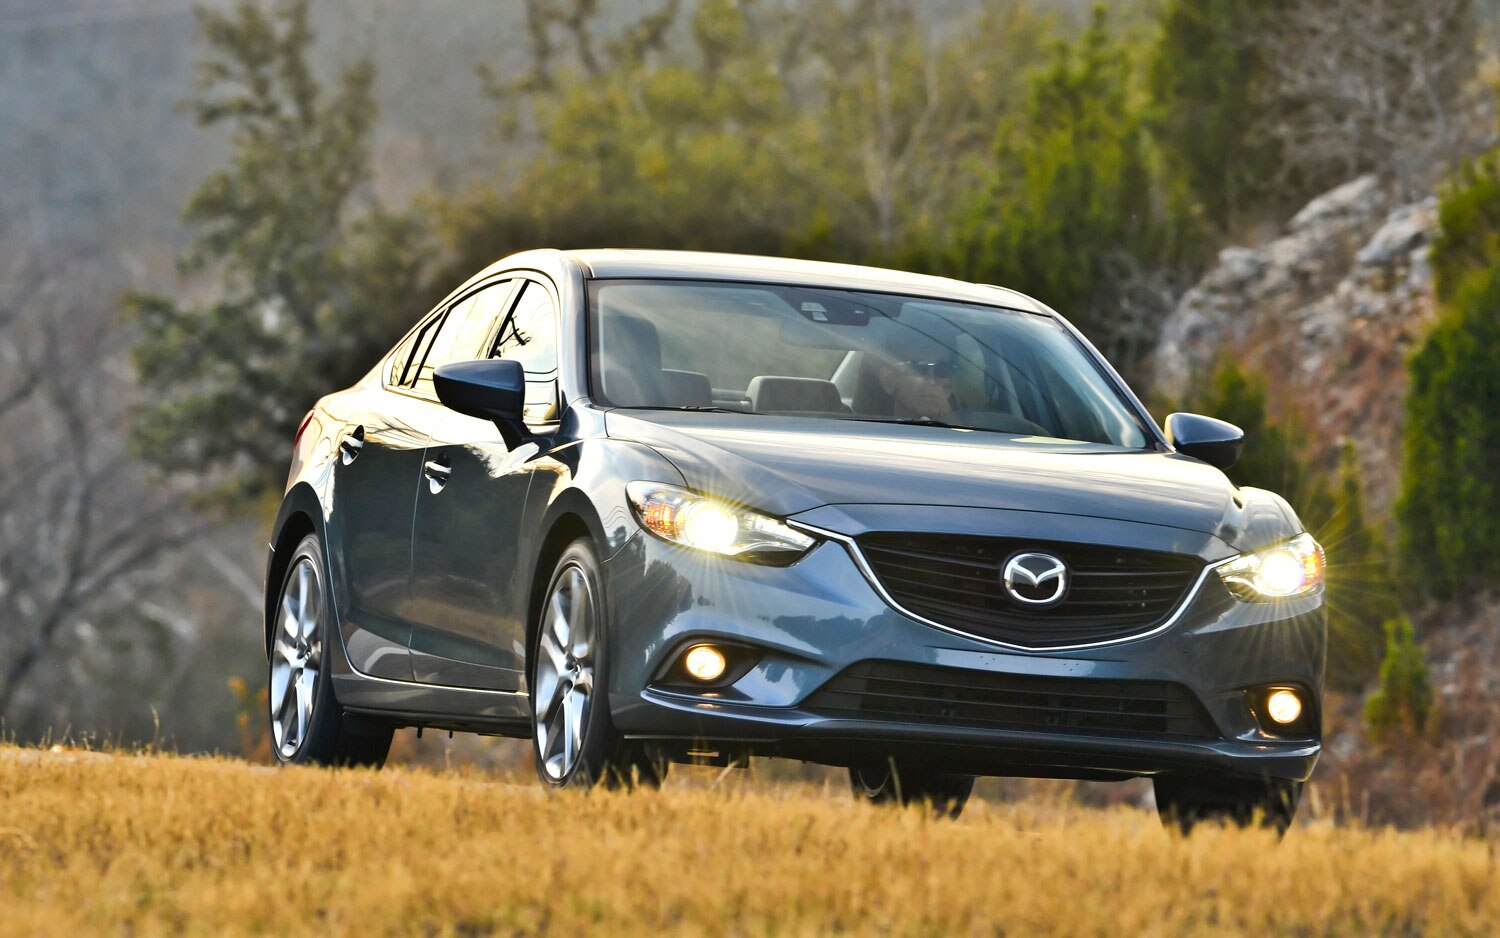 2014 Mazda6 GT Front Right View 31